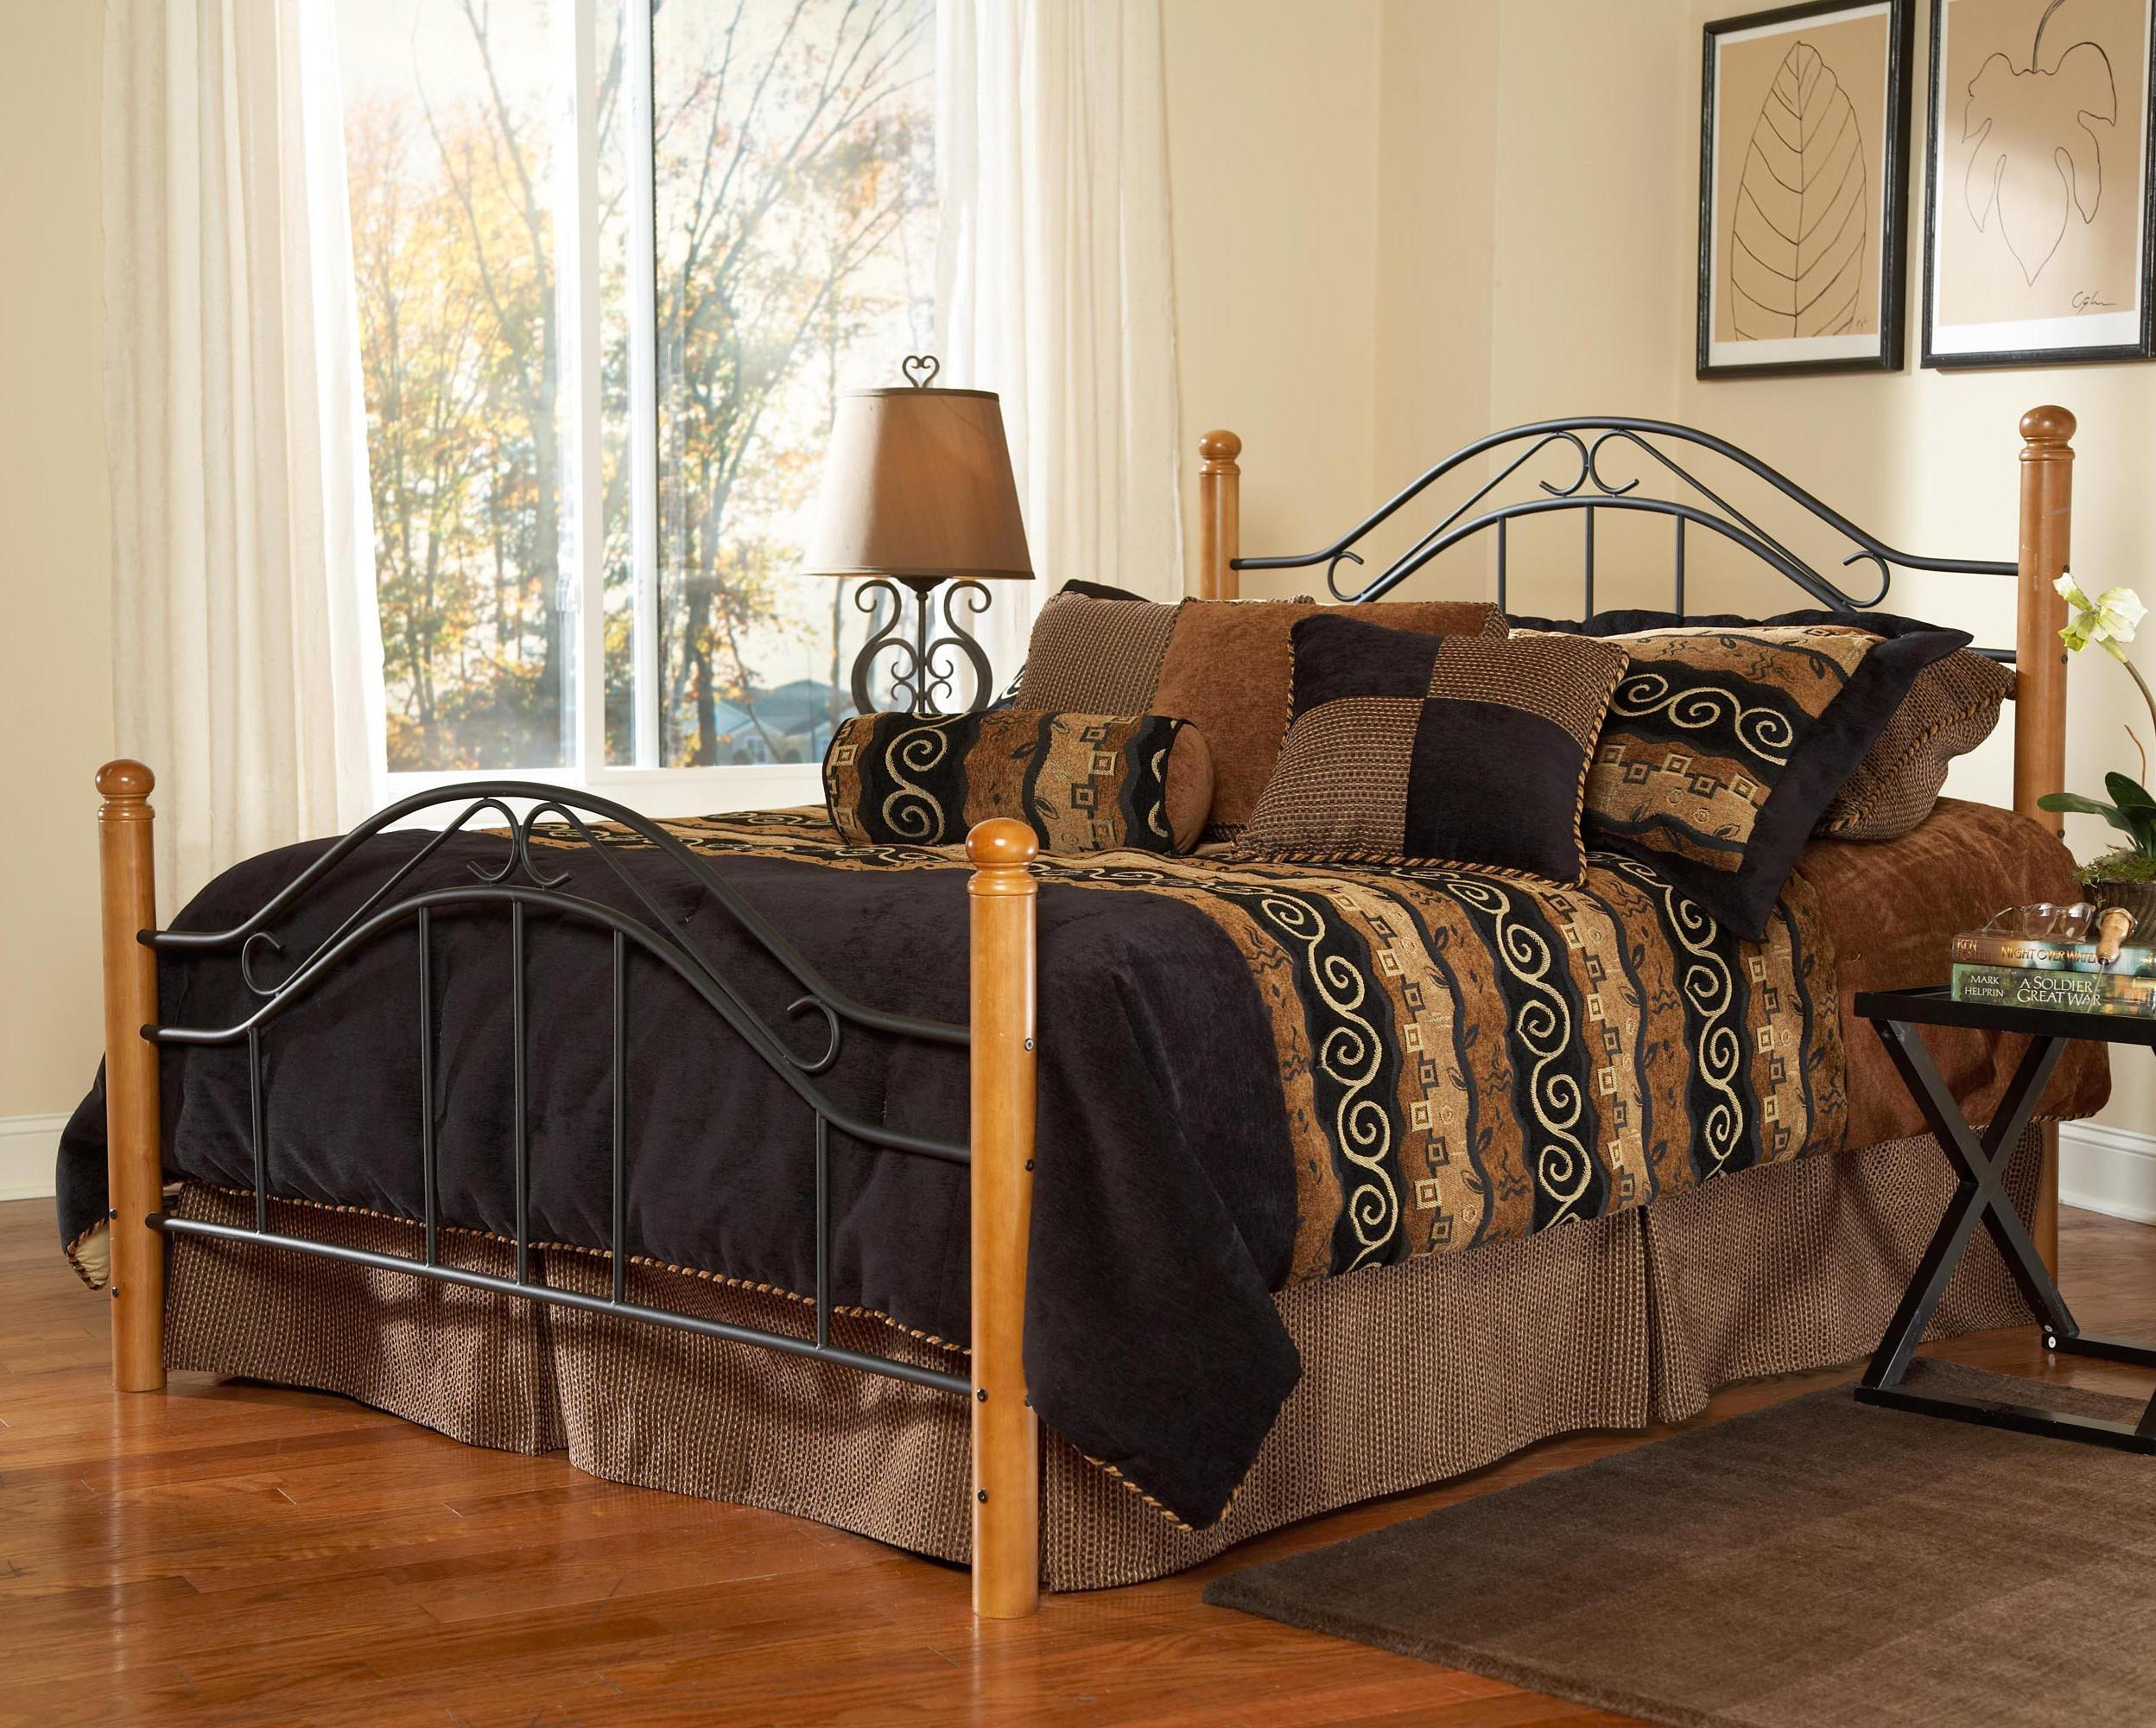 Hillsdale Wood Beds King Winsloh Bed - Item Number: 164BKR